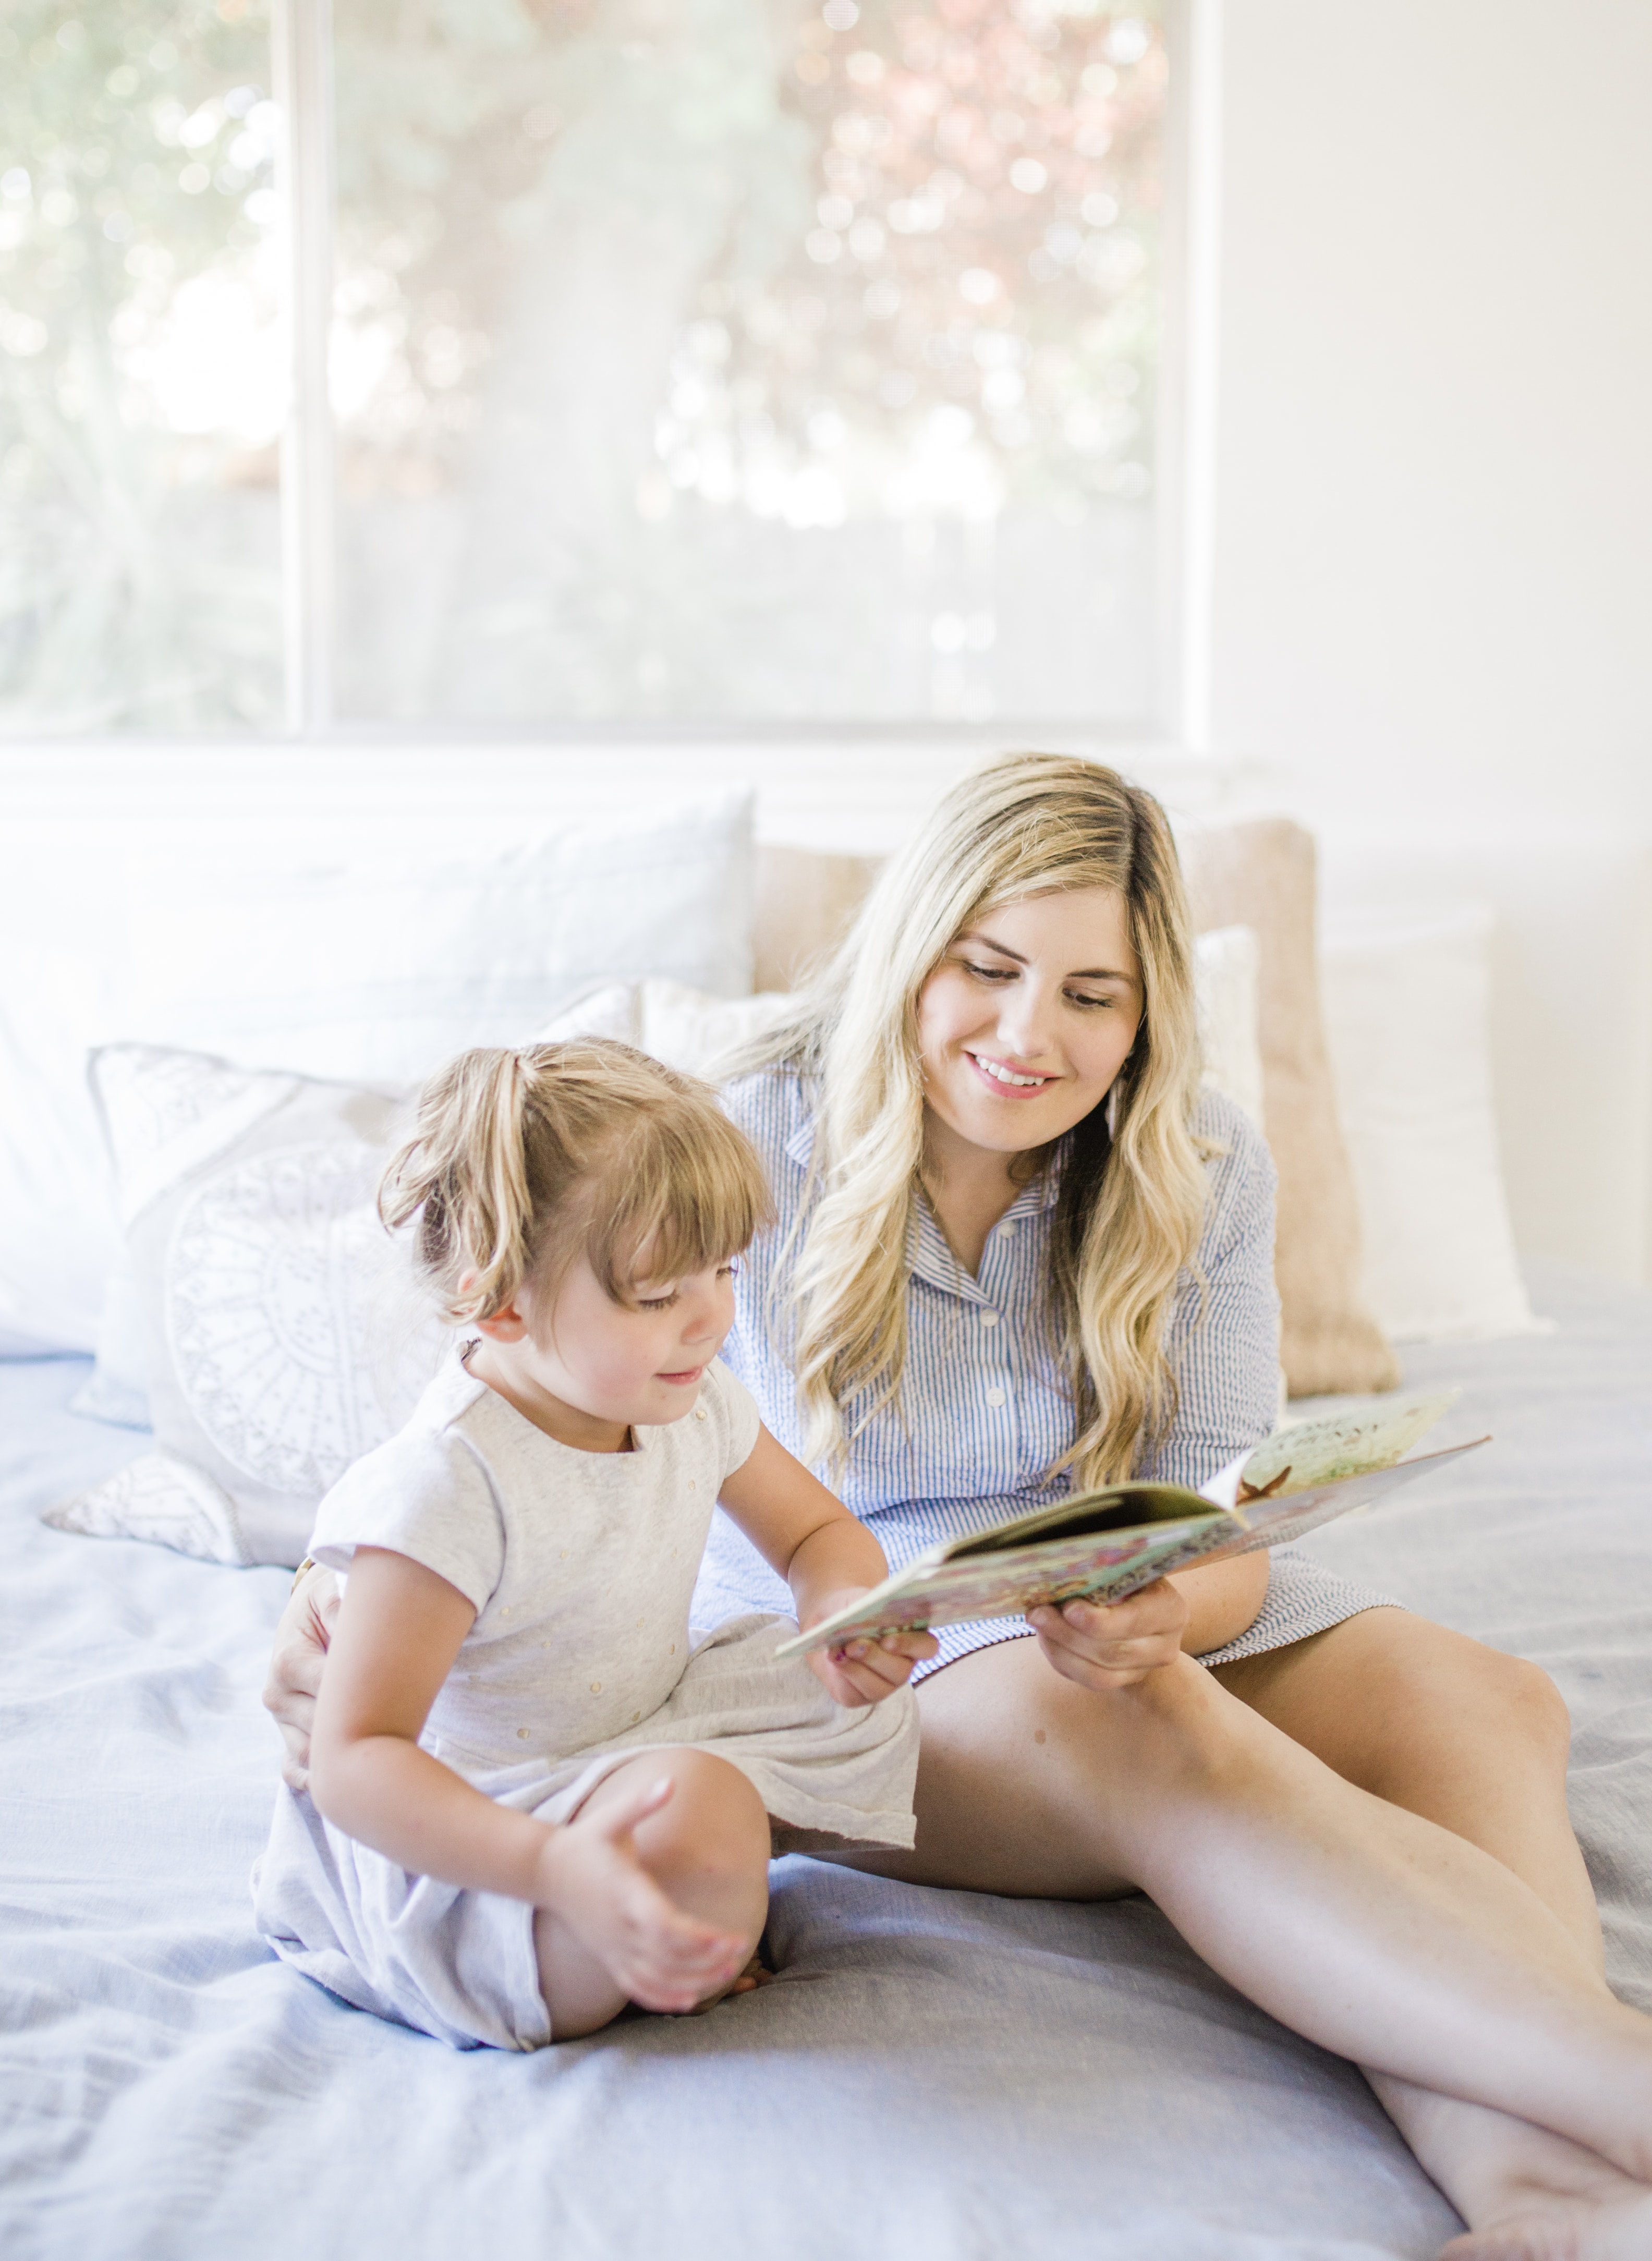 girl reading on her bed